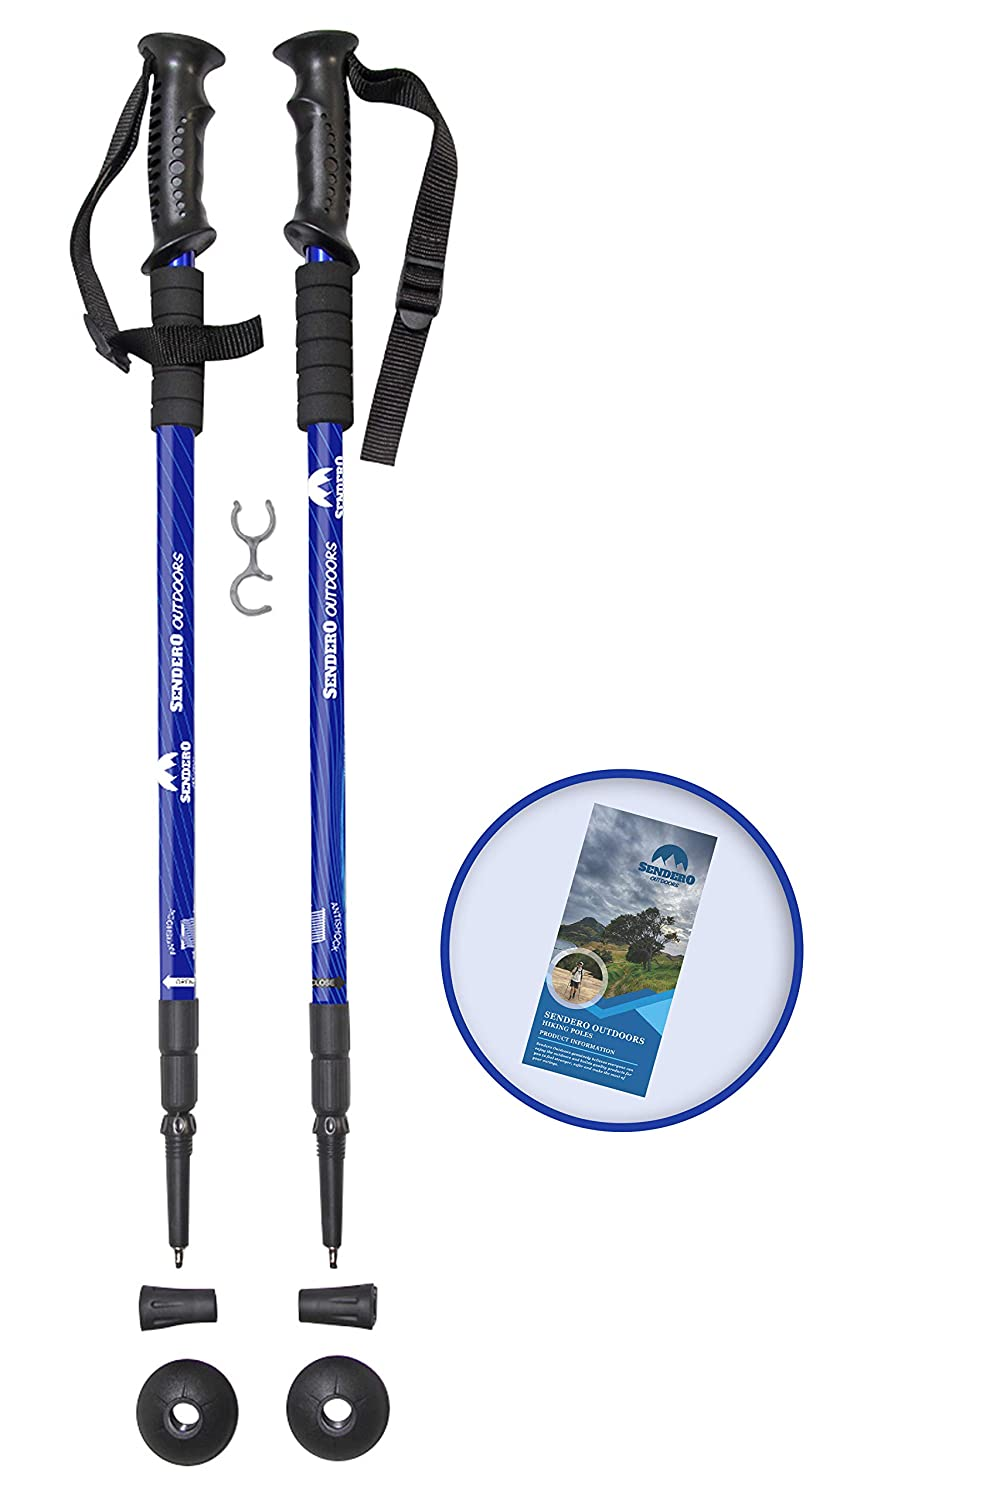 Sendero Outdoors Trekking Poles – Collapsible, Adjustable, Lightweight Aluminum, Anti-Shock and Telescopic System, All Terrain, for Hiking, Trekking, Walking, for Men, Women Children, 1 Pair